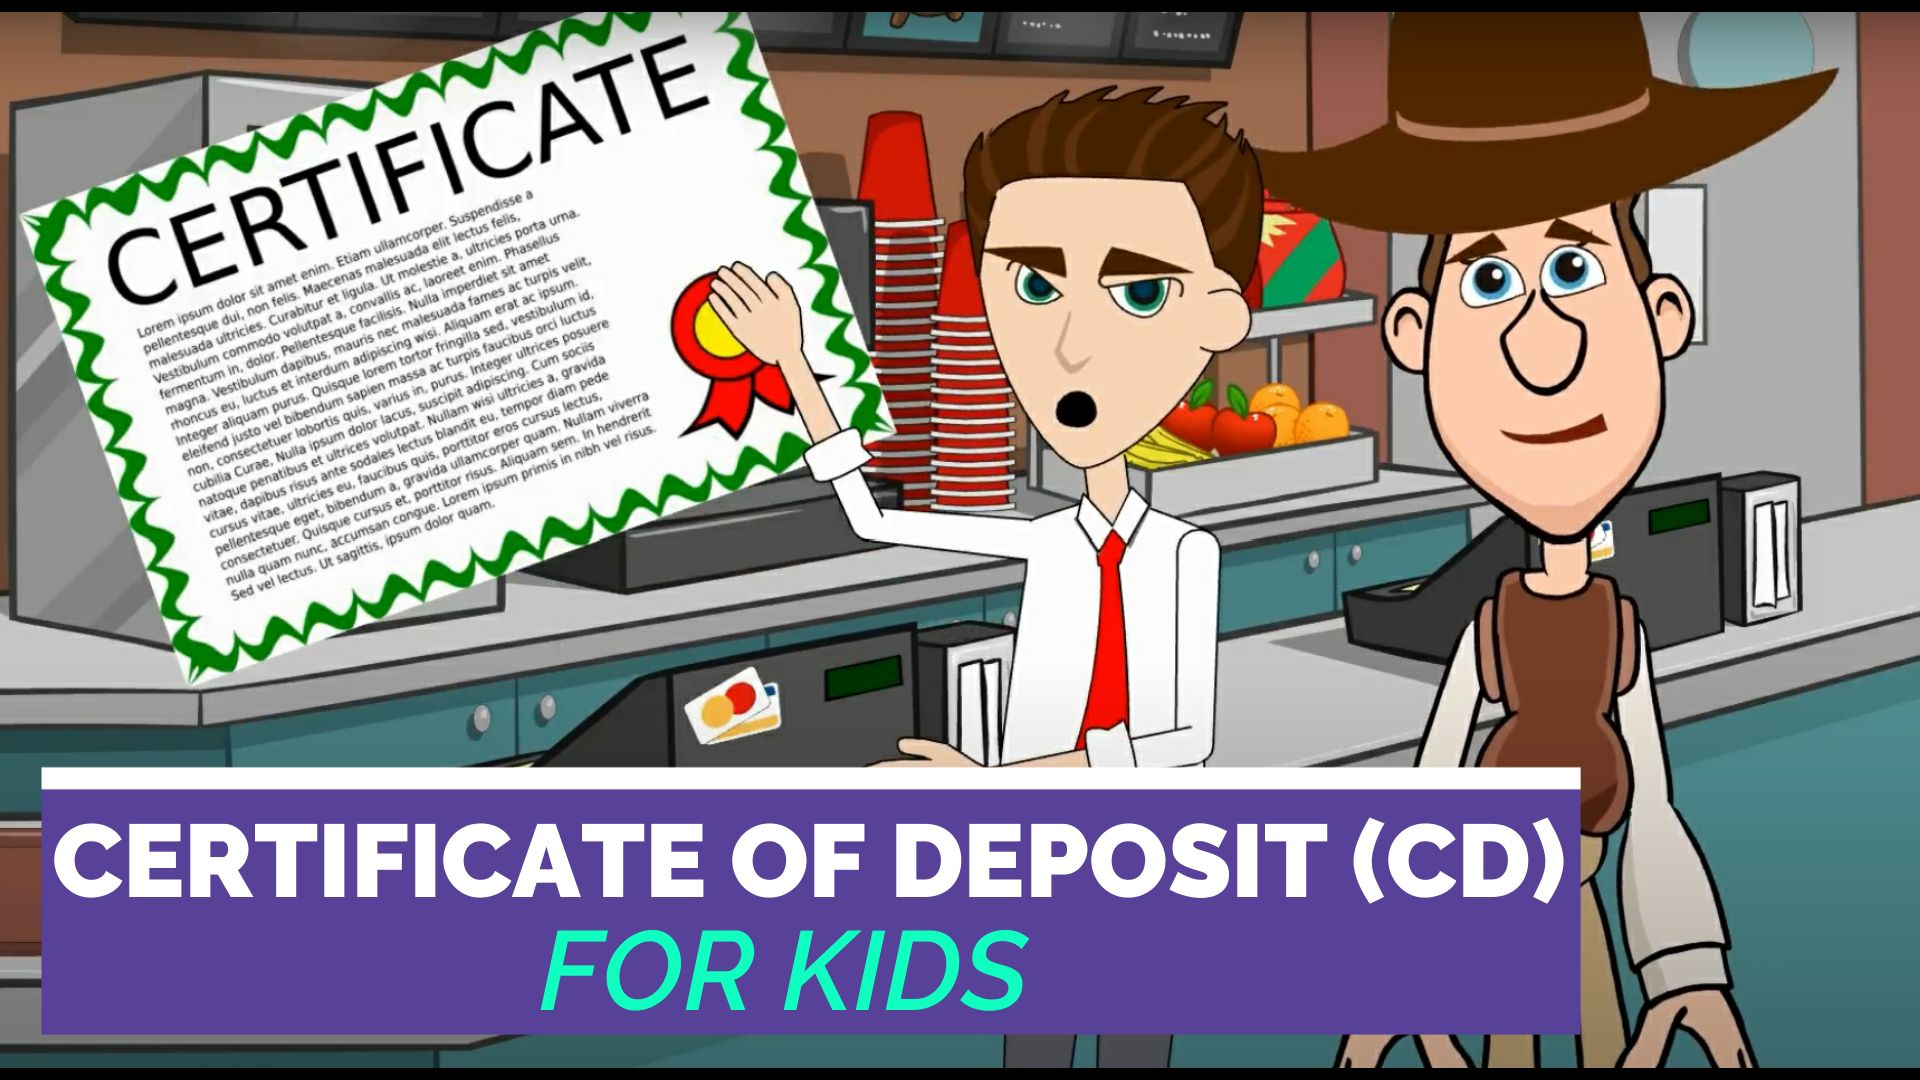 Certificate of Deposit or CD